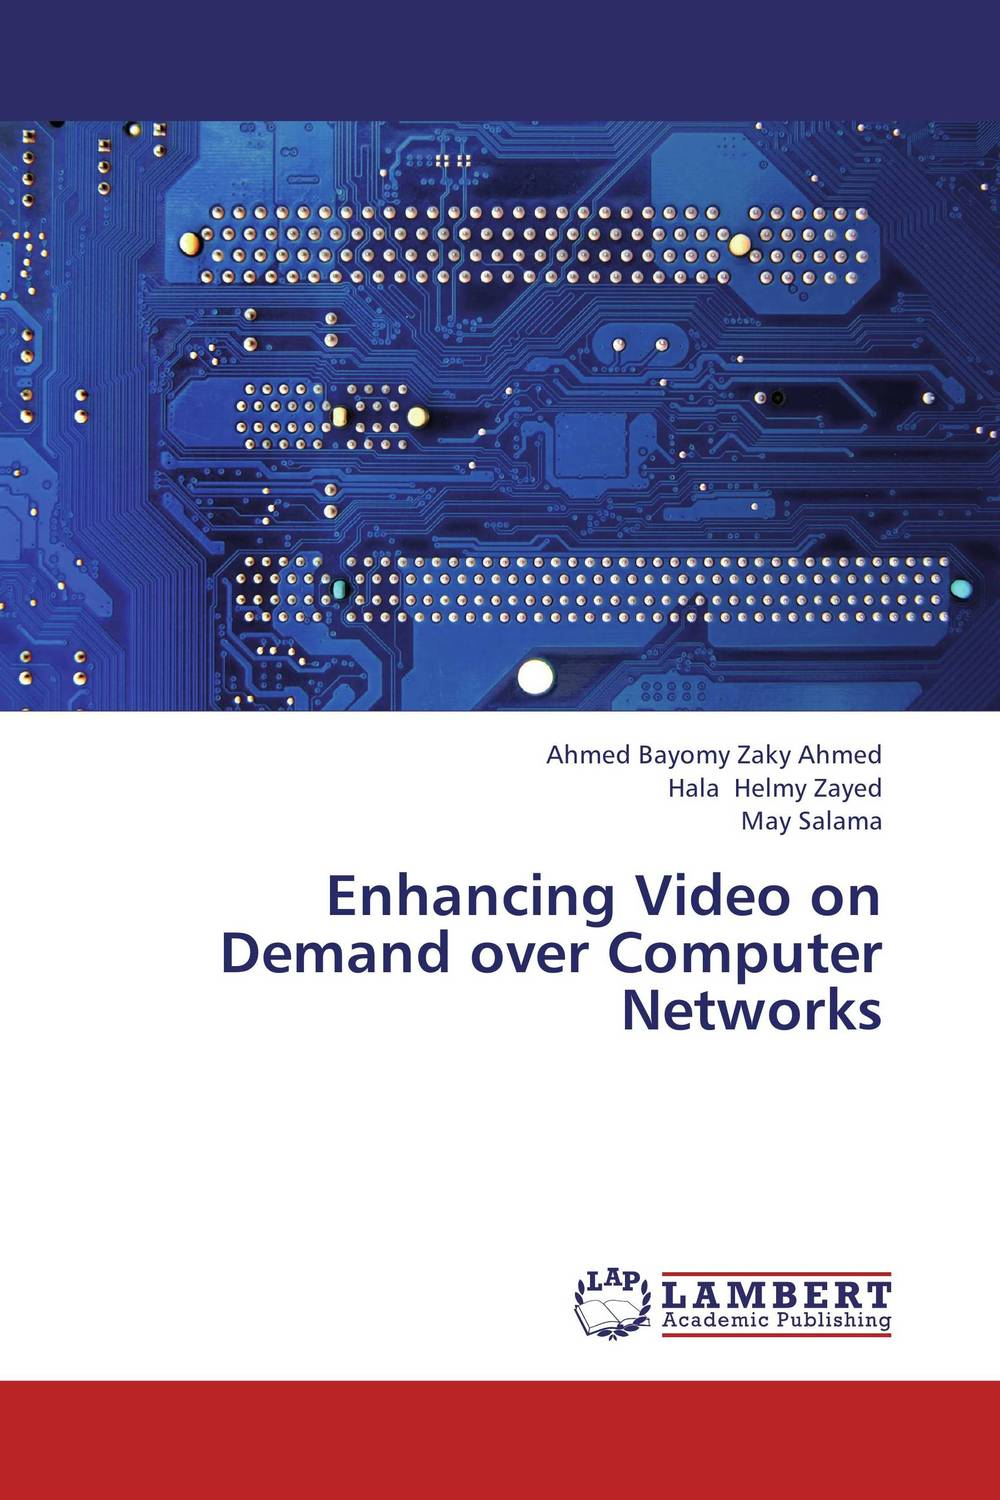 Enhancing Video on Demand over Computer Networks hannell across canada – resources